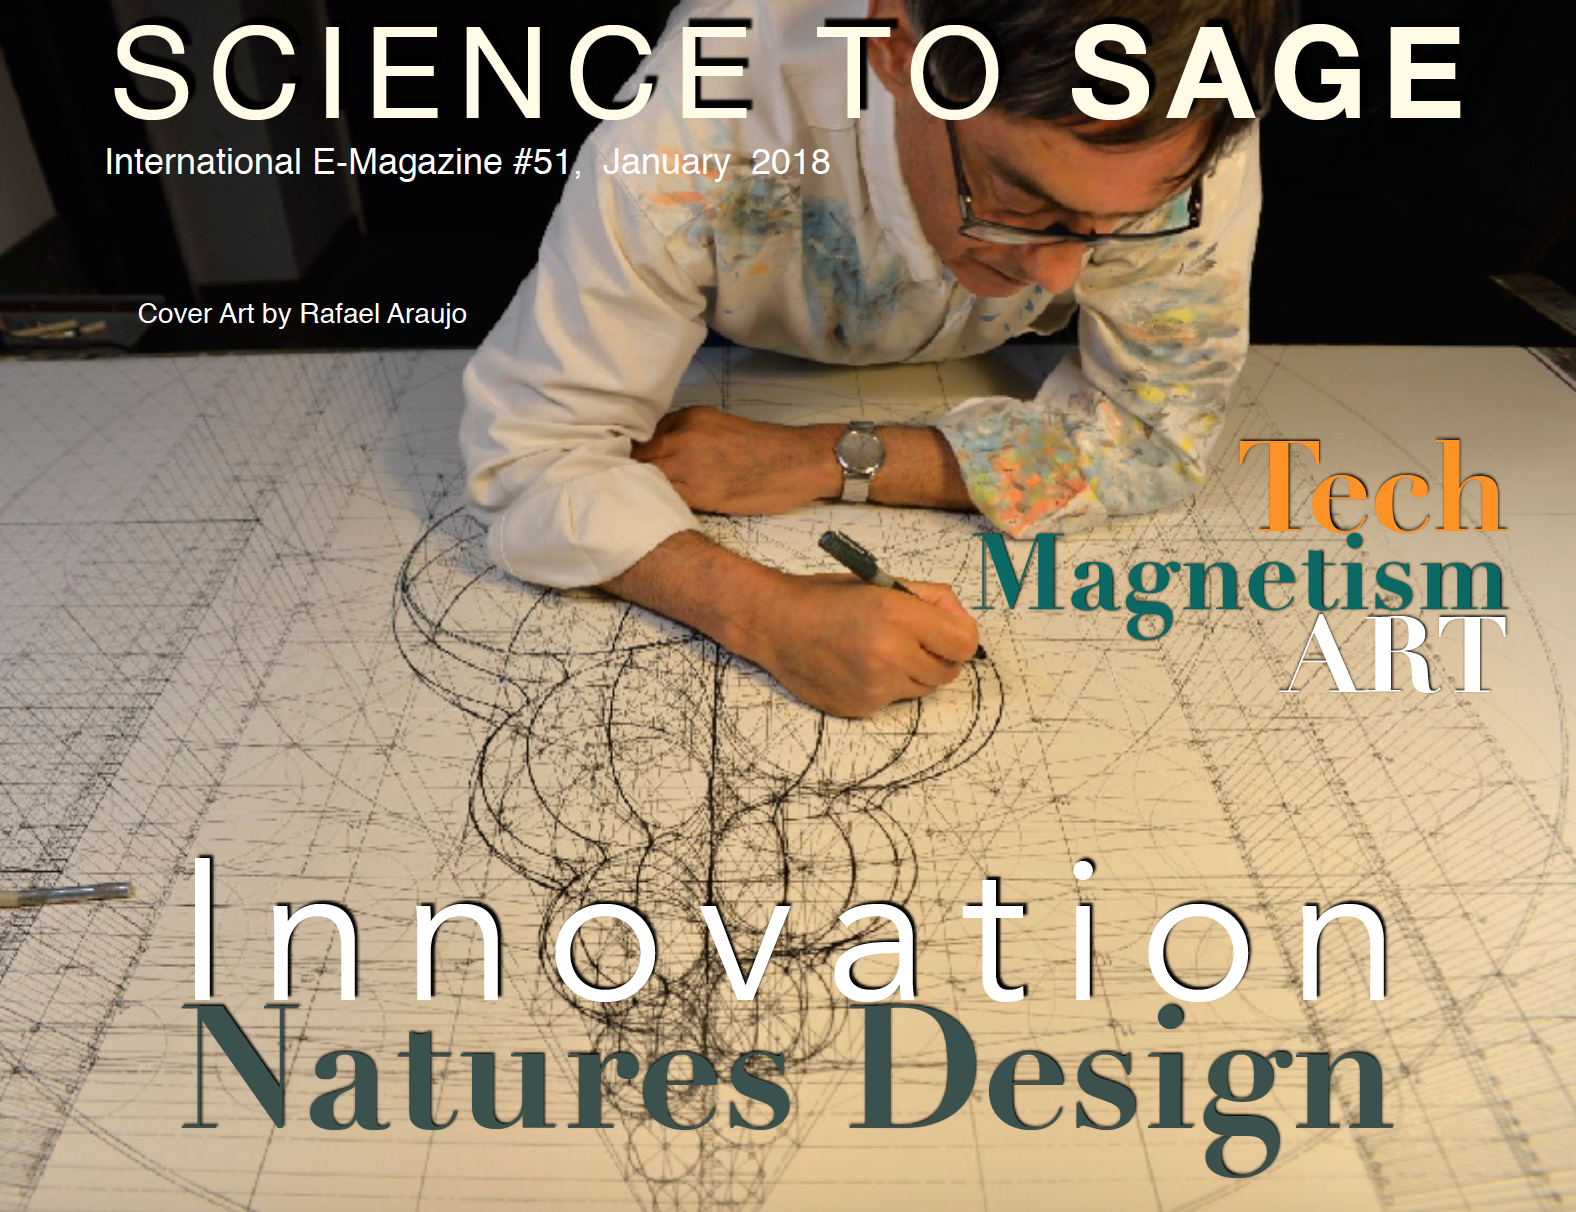 51-INNOVATIONS: NATURES DESIGNS